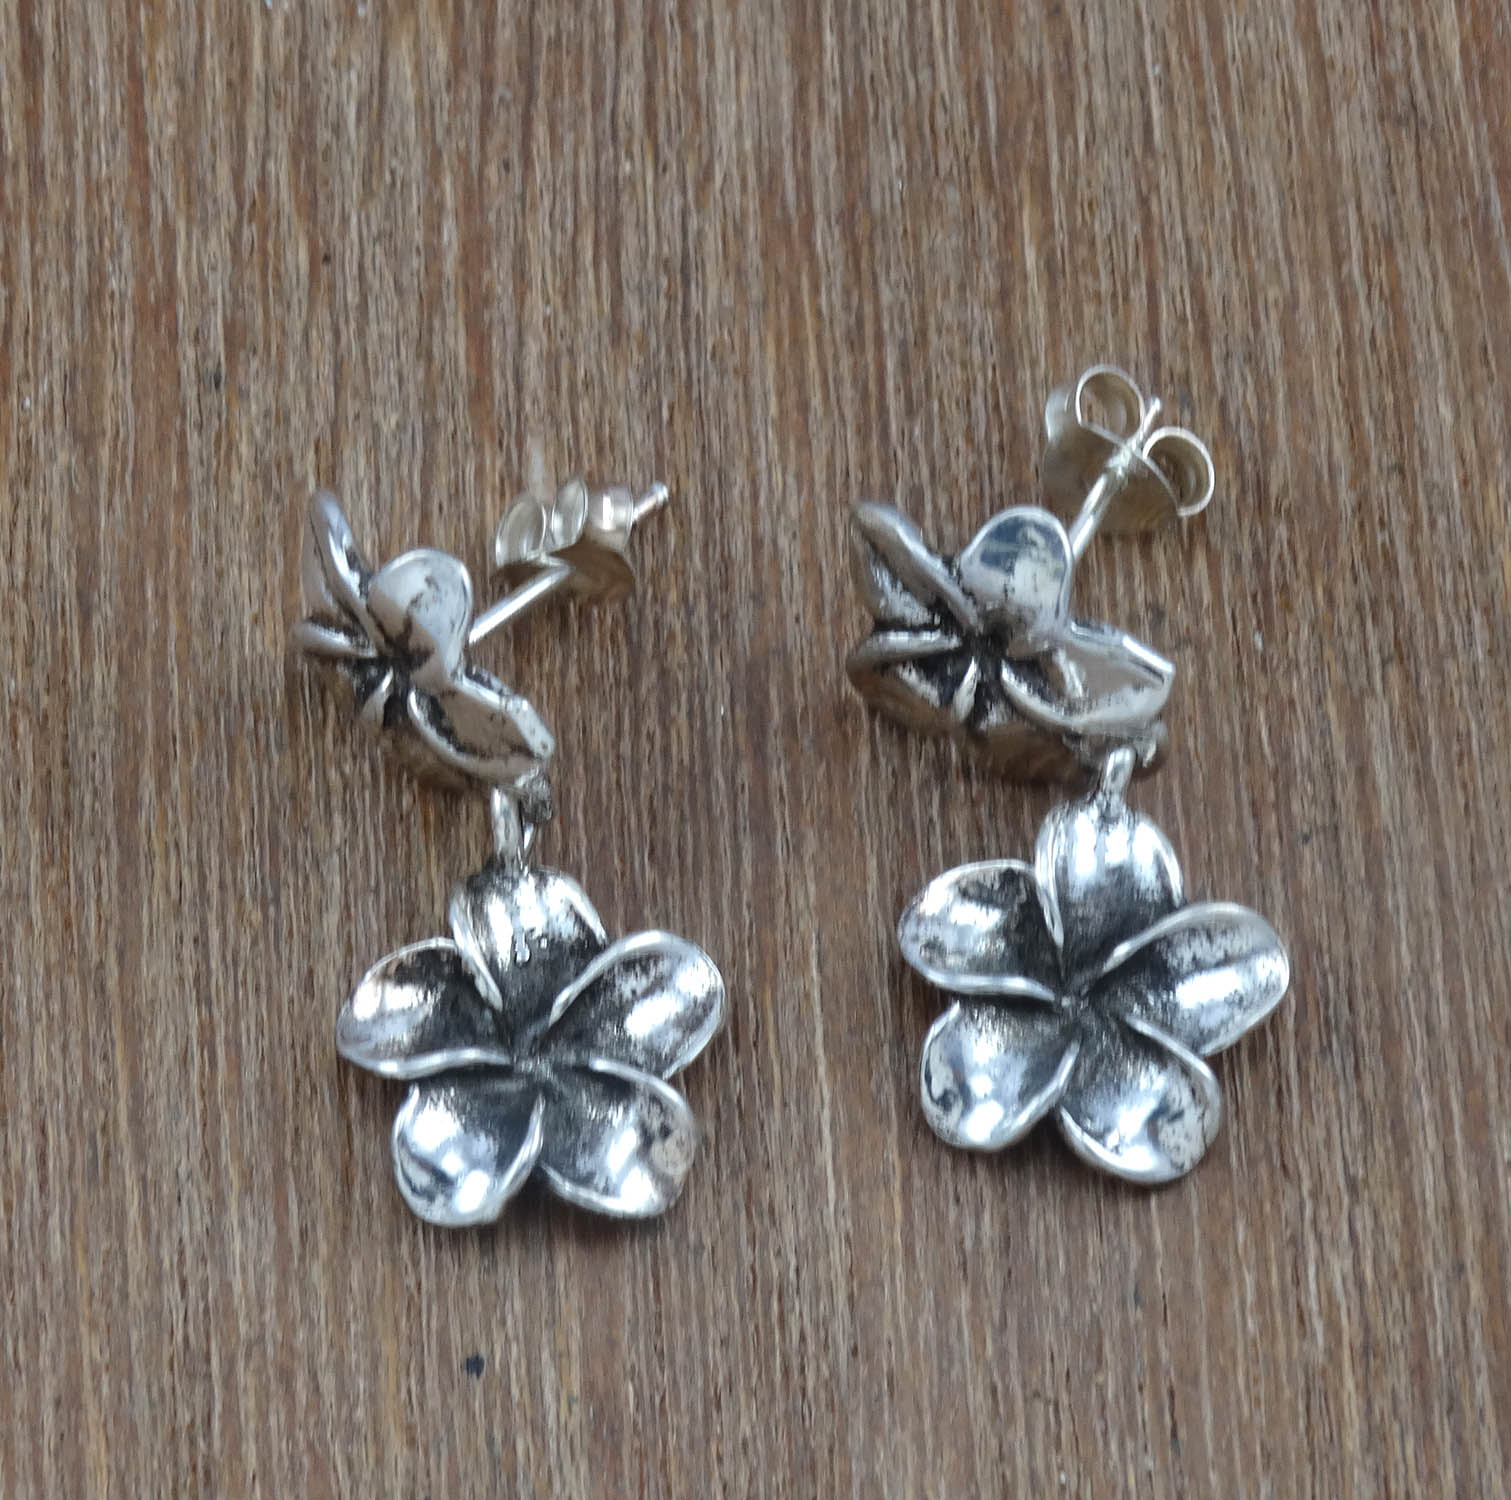 Antique-Sterling-925-Sterling-Silver-Plain-Fashion-Jewelry-Earring-PWE-3108